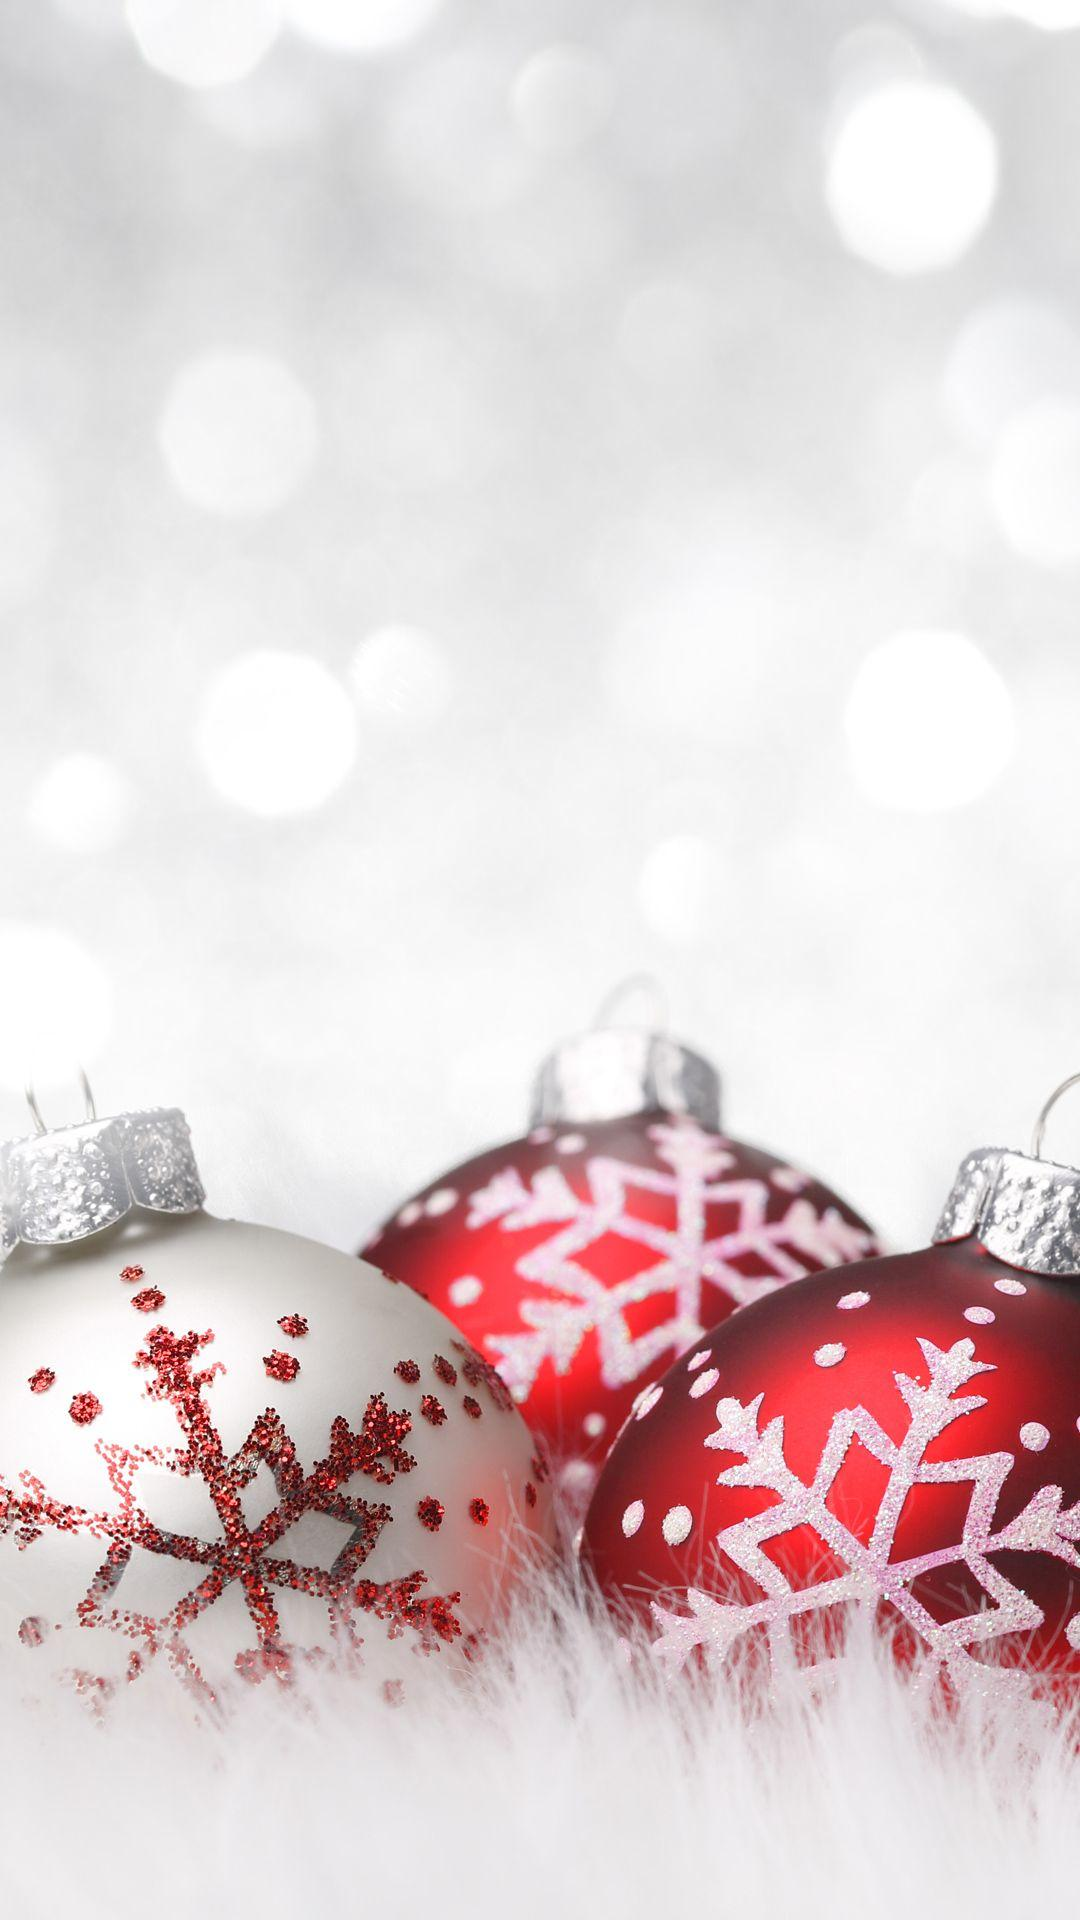 White Christmas Wallpapers - Wallpaper Cave